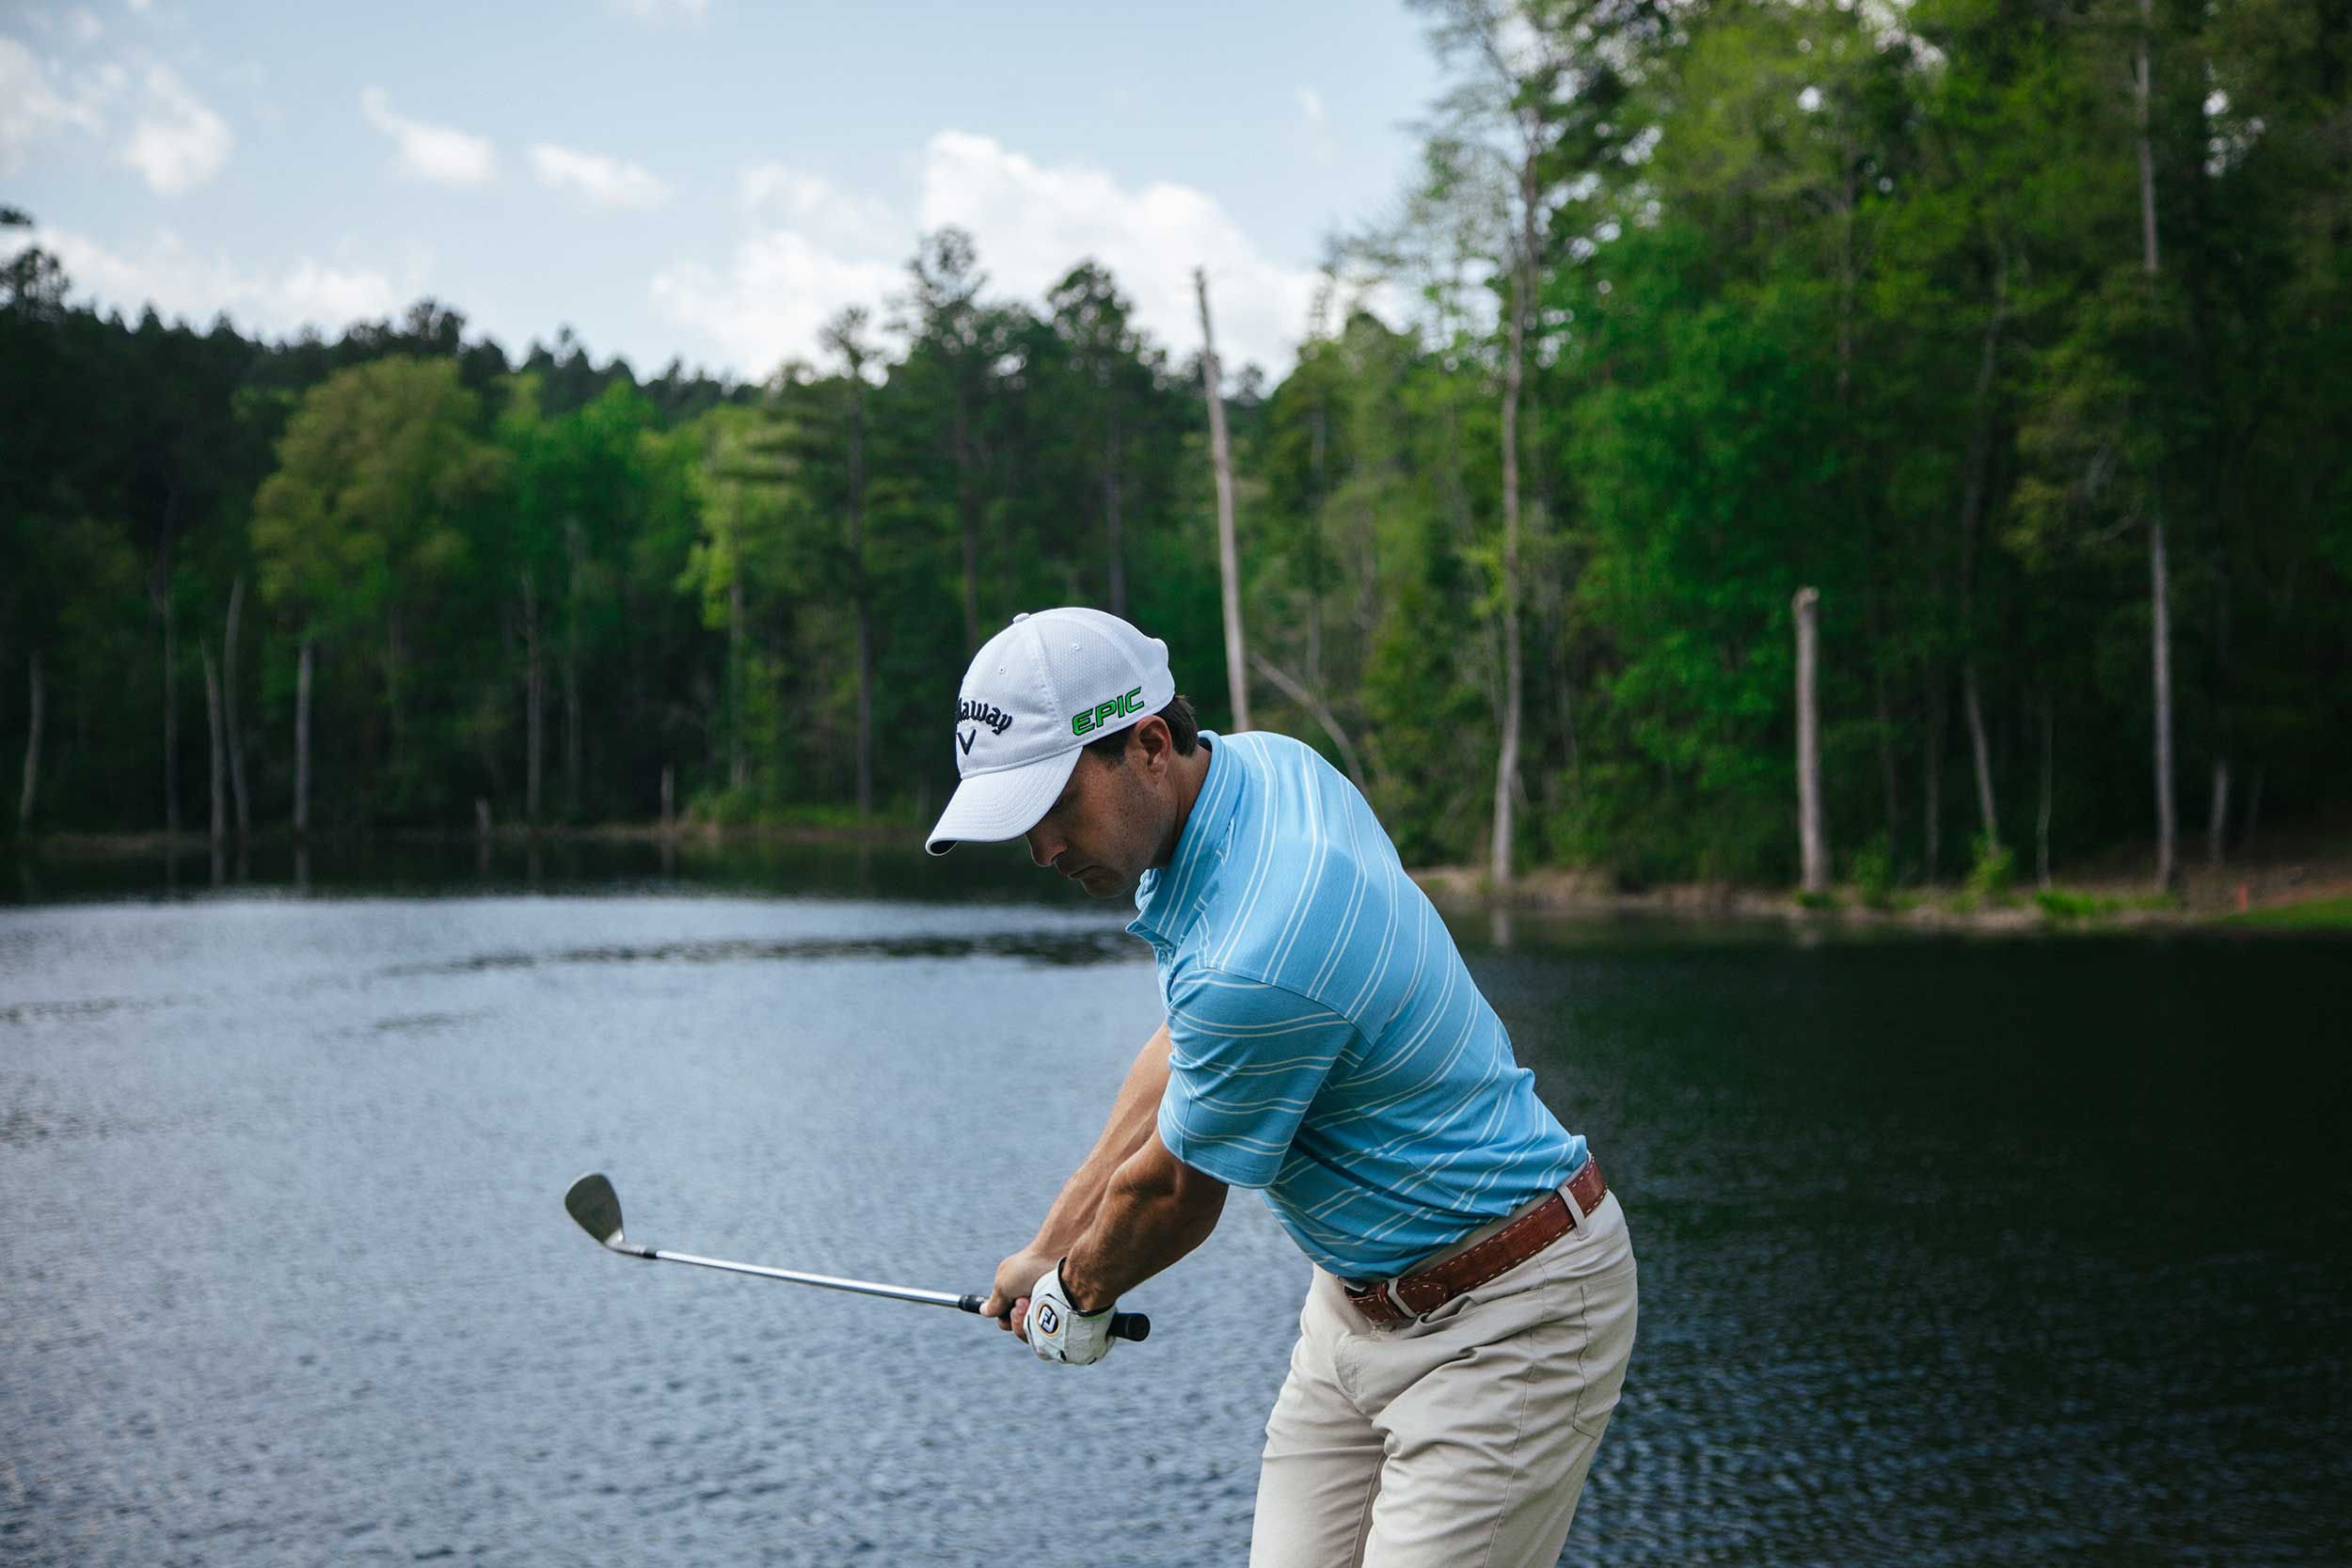 Dunning-Golf-Atlanta-21